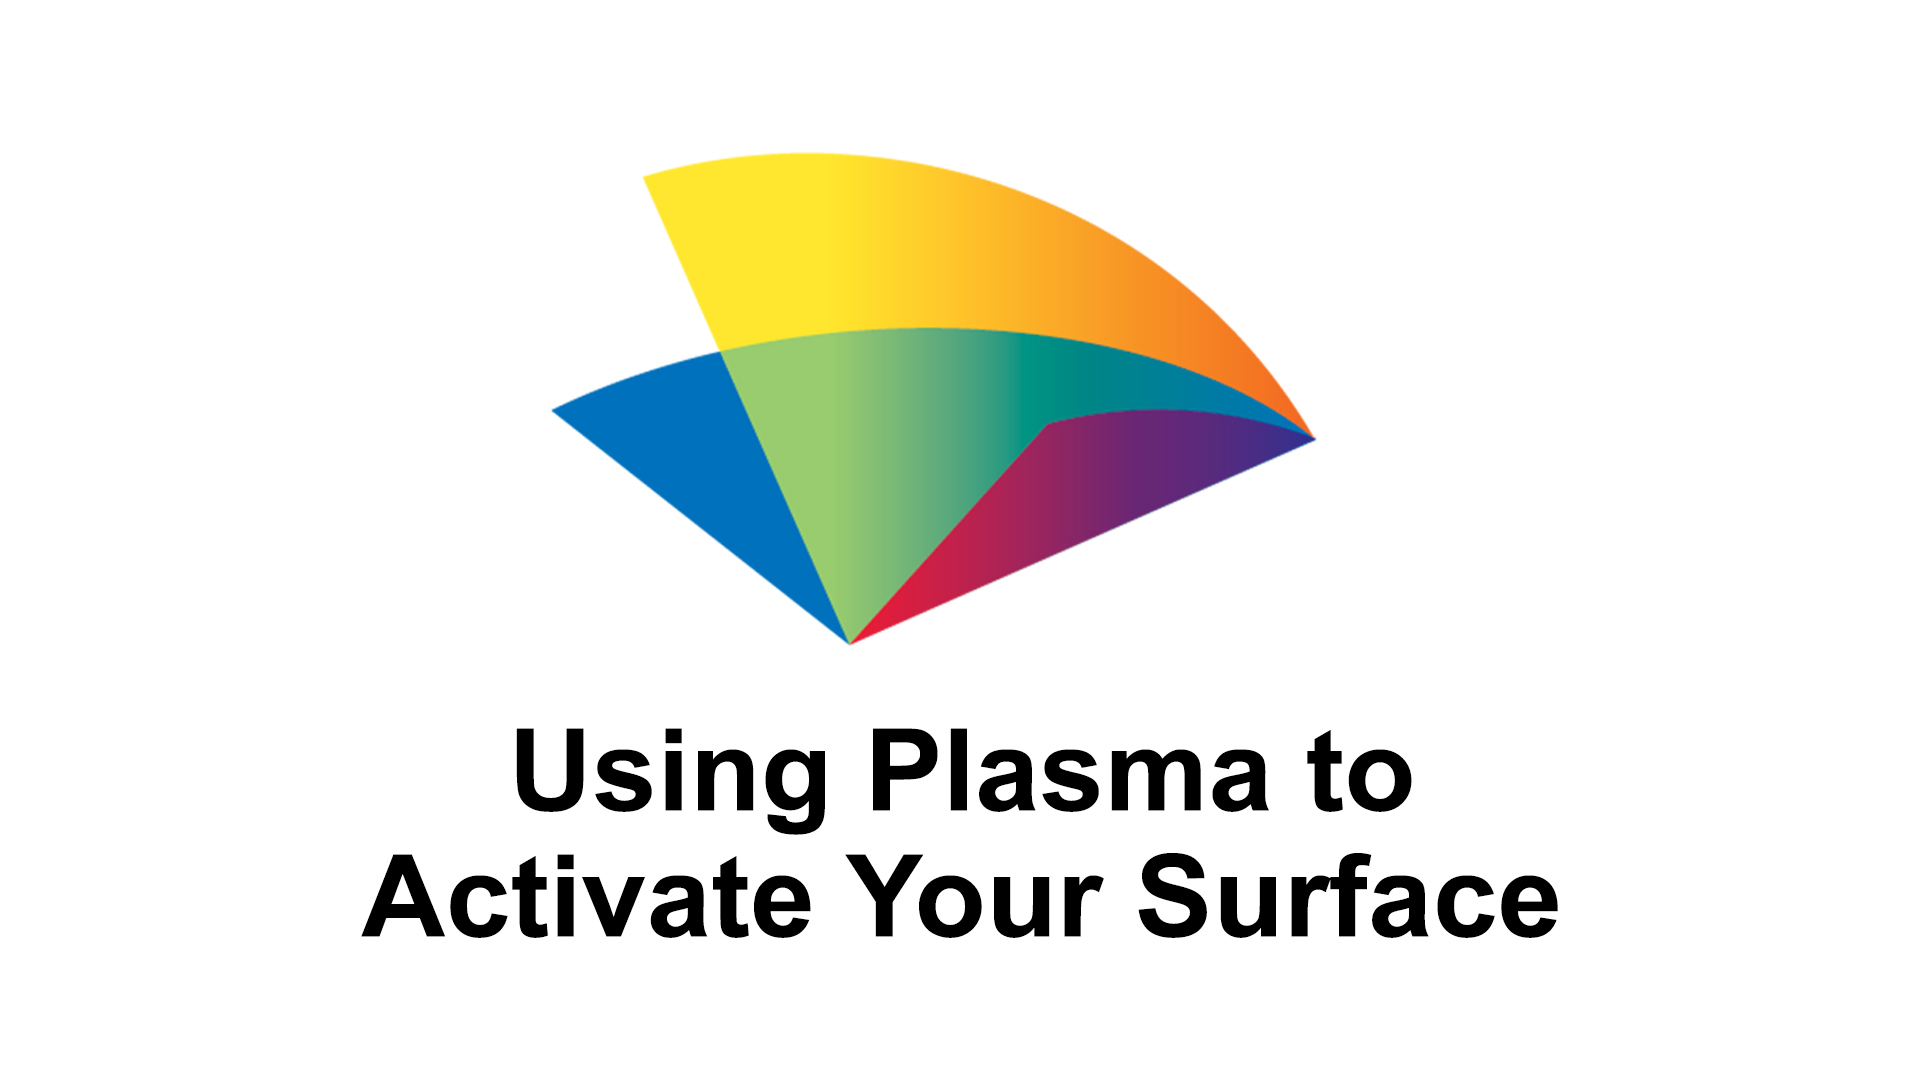 2-using-plasma-to-activate-your-surface